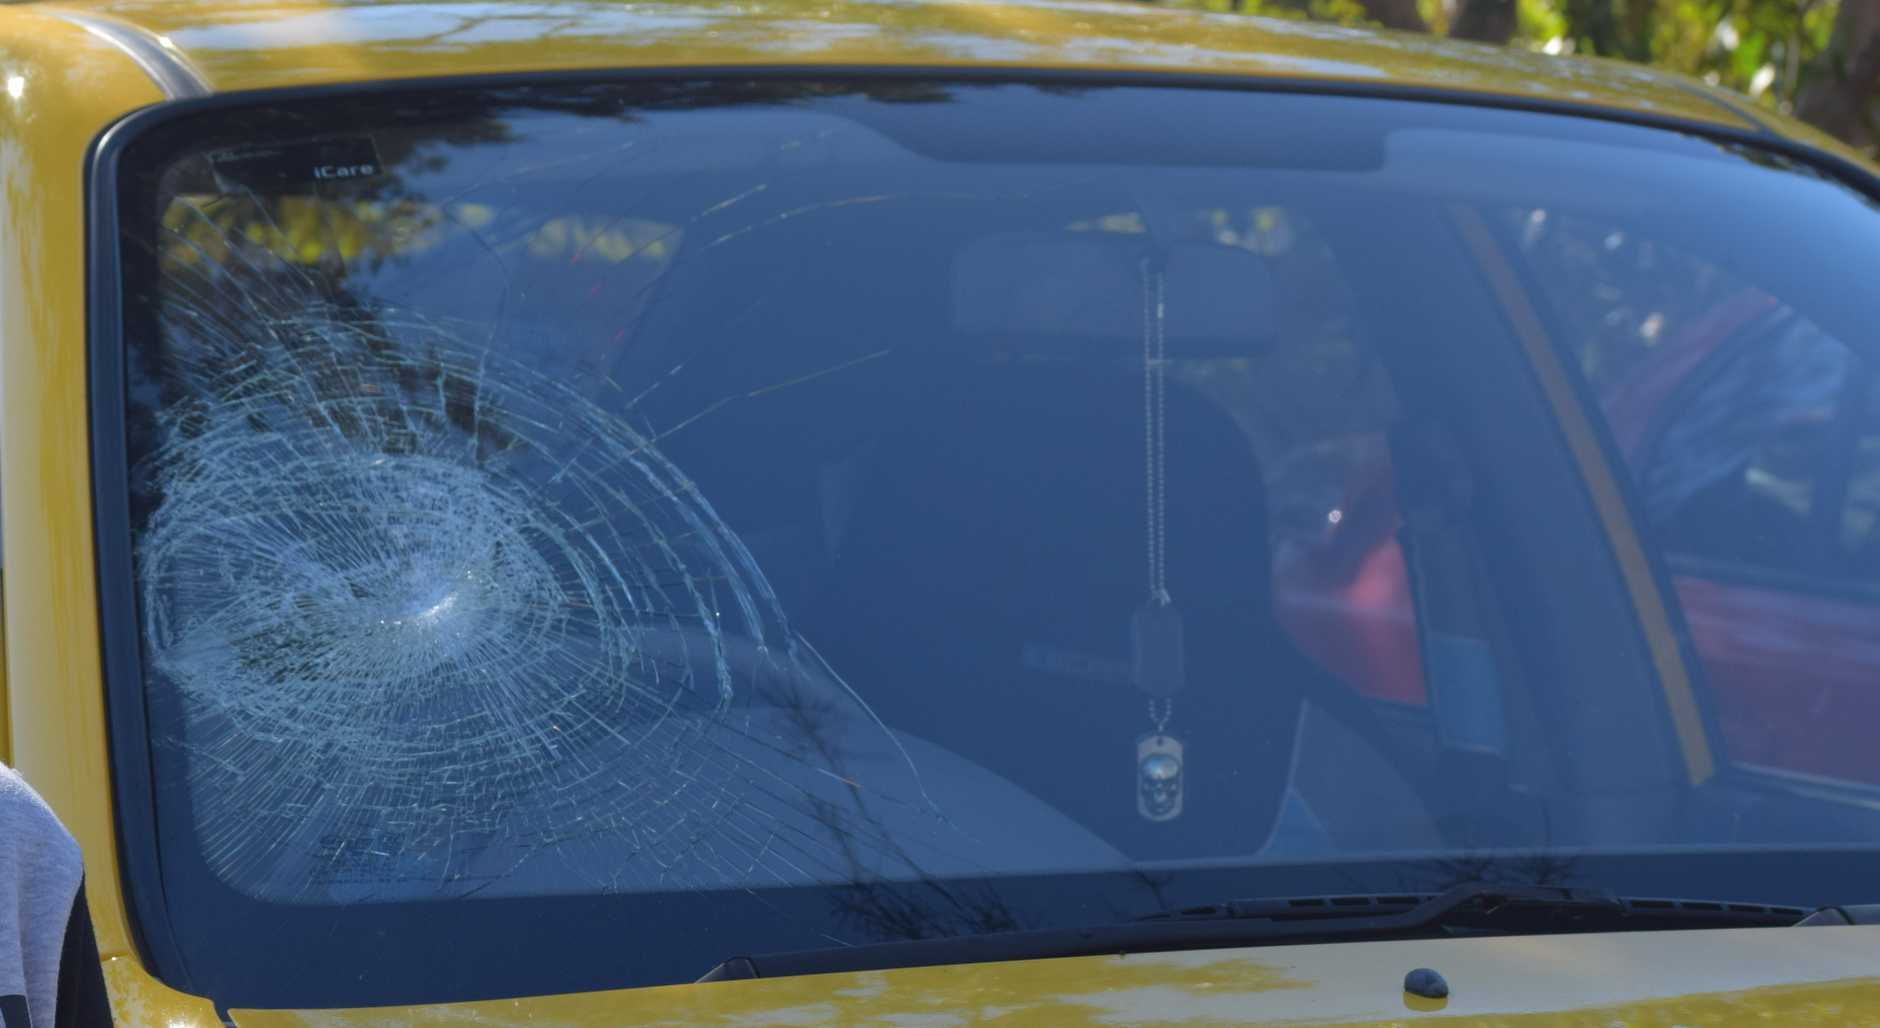 A teen's windscreen was smashed in a shocking road rage attack.